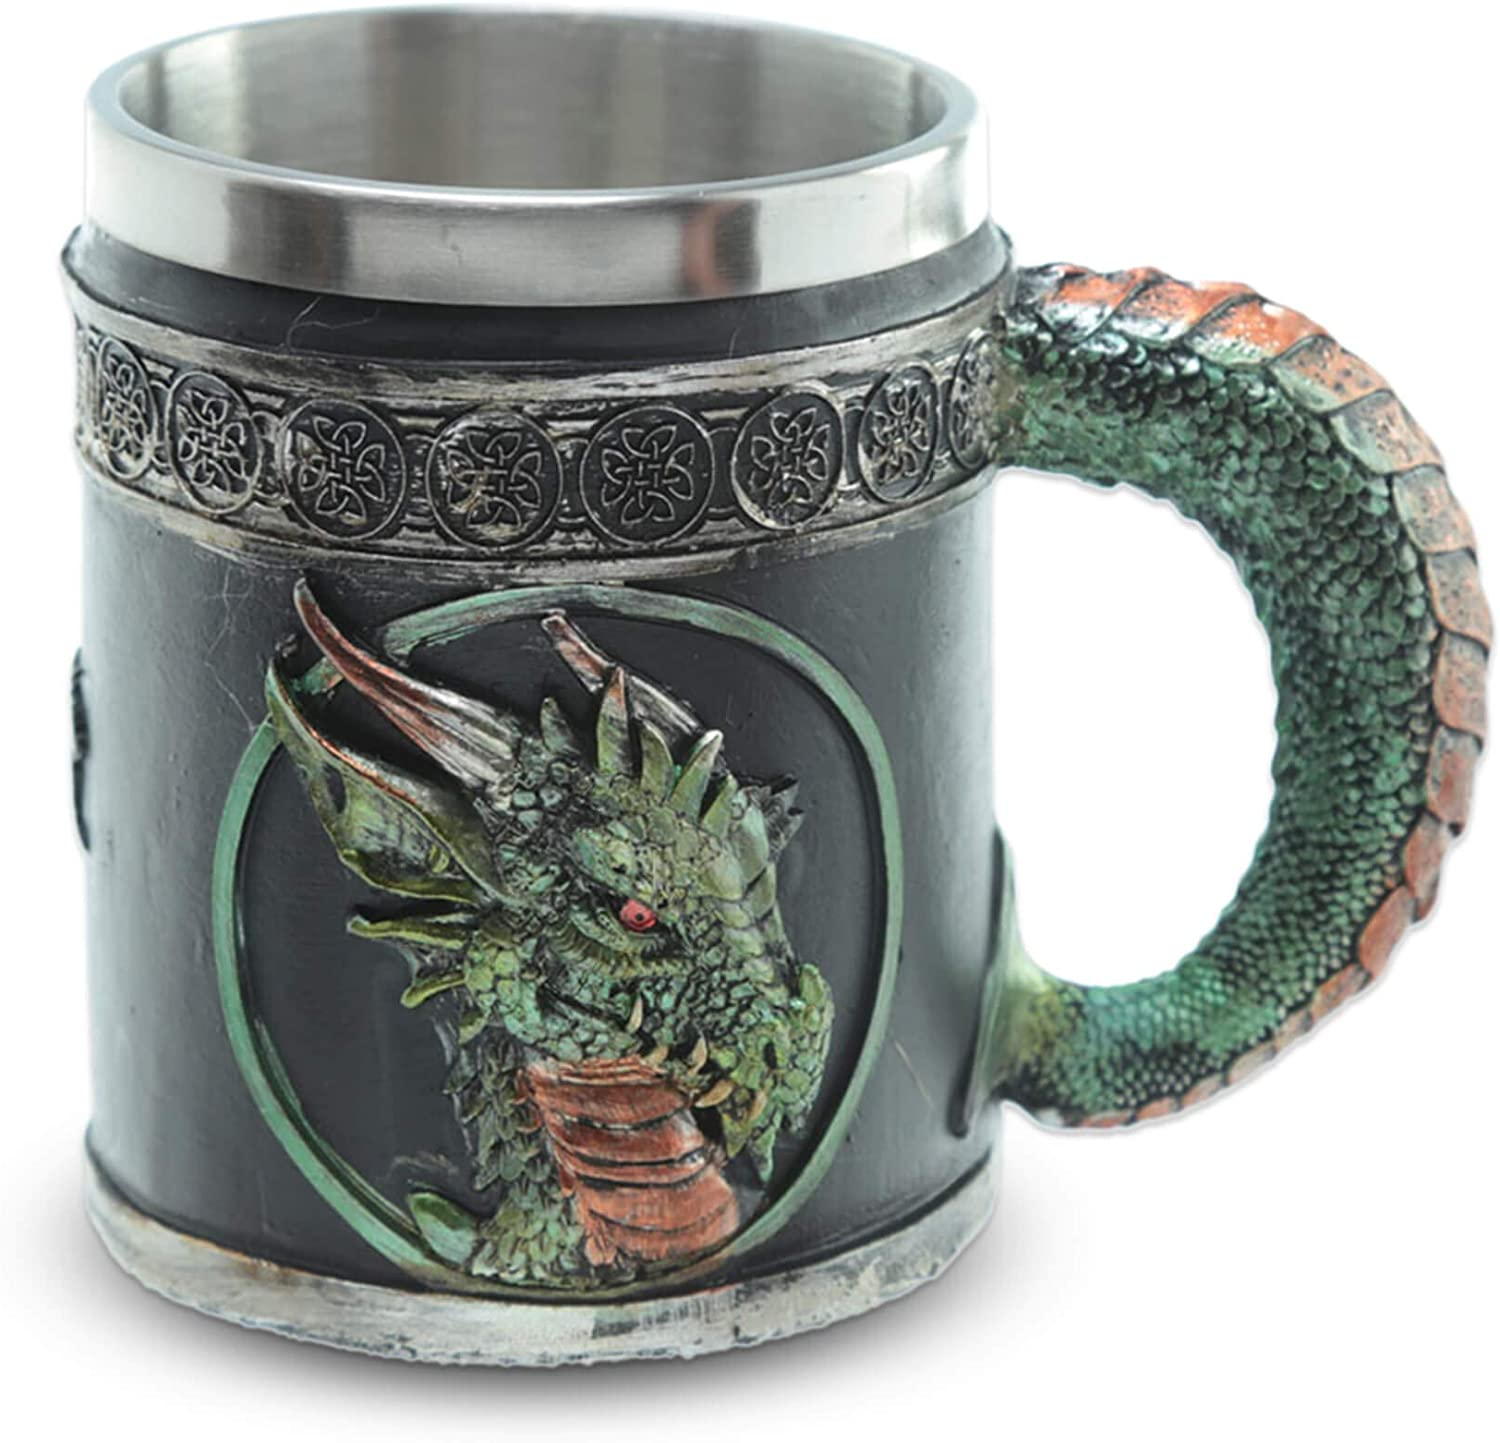 mtb more energy Jarra ''Blood of The Emerald Dragon'' (0,35l) - Verde - Altura 11 cm - Decoración Medieval fantasía fantástico Fantasy